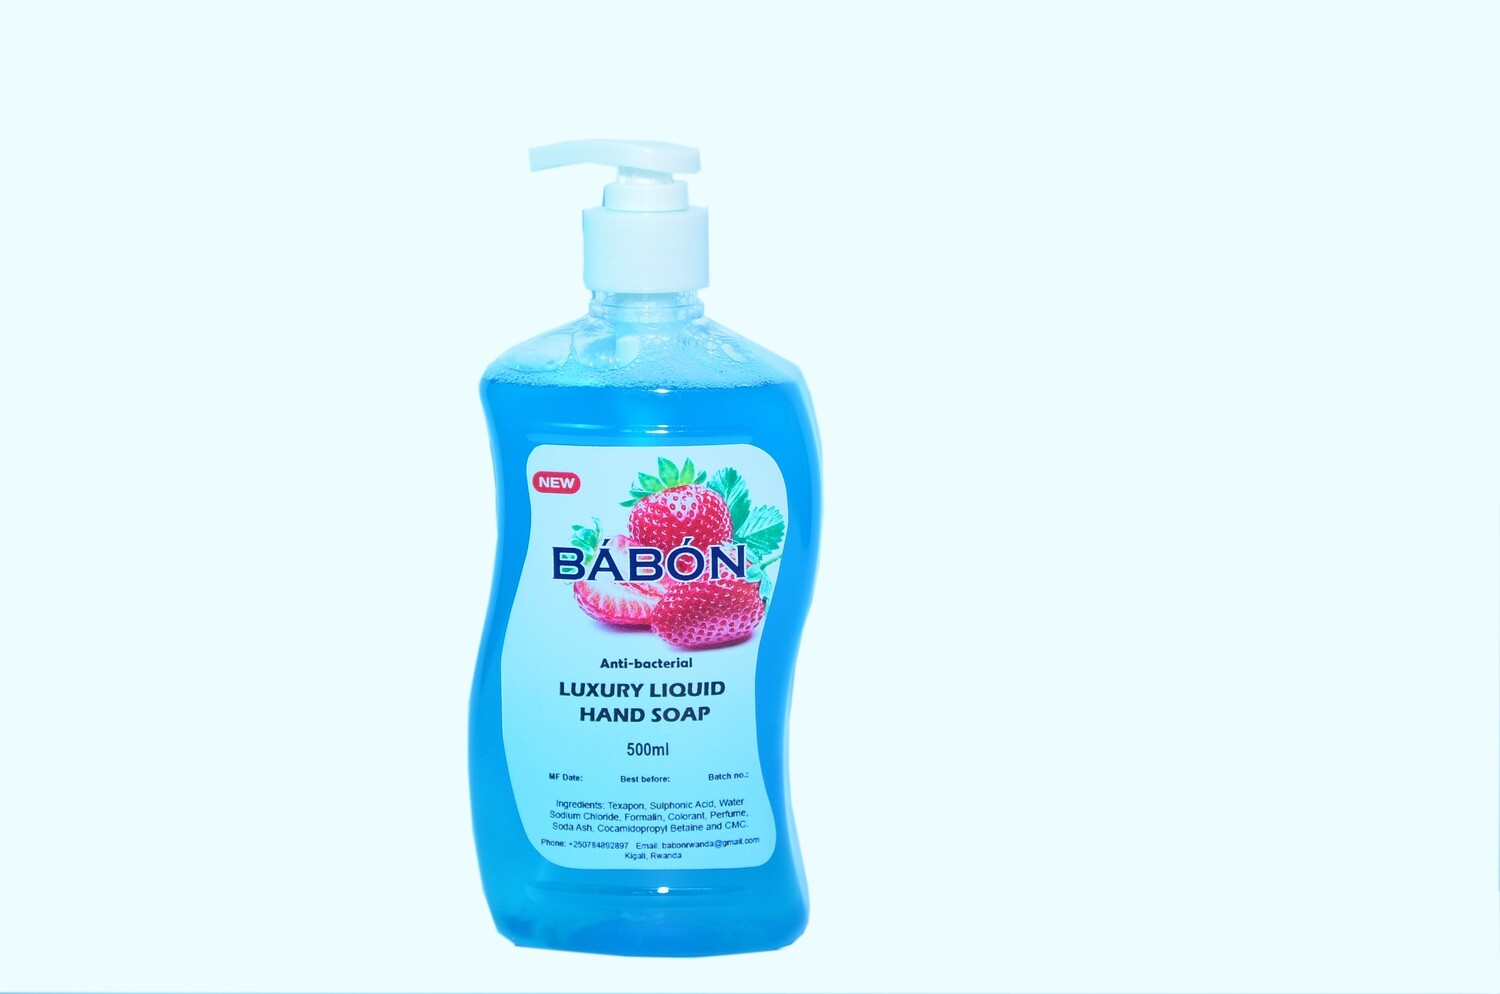 BABON 50ML hand wash